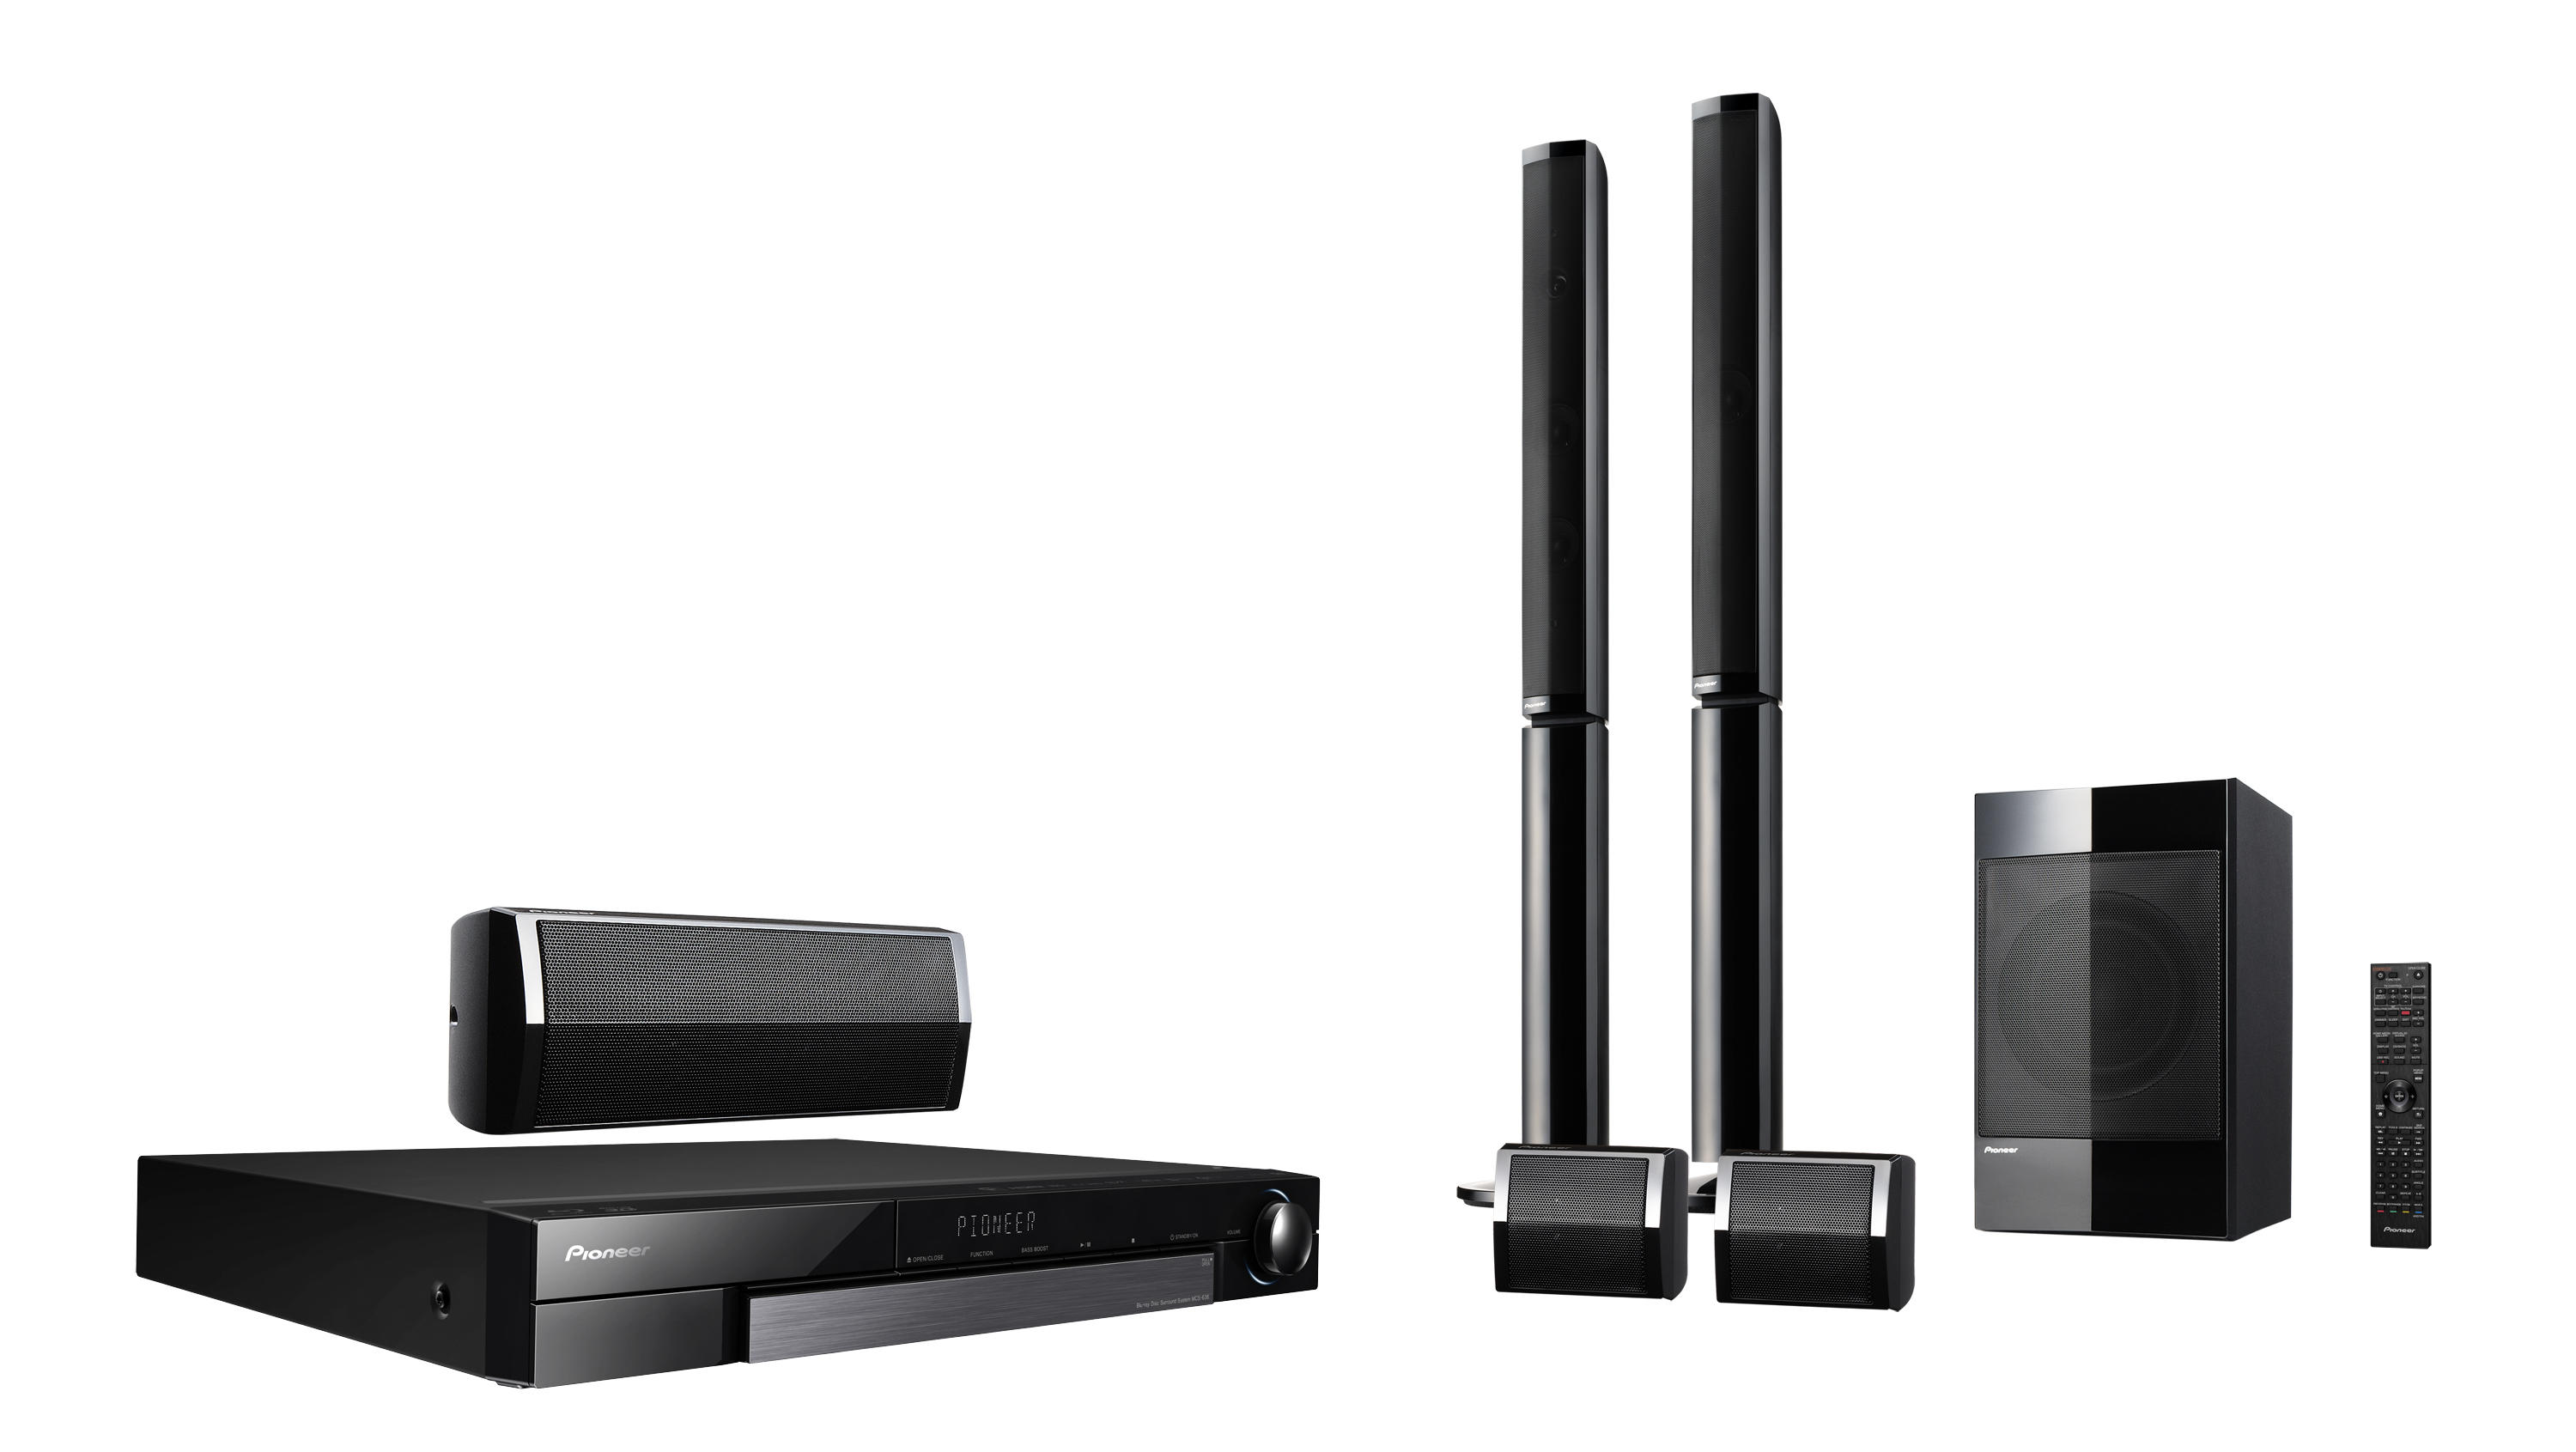 Mcs 636 Home Theater Speaker Bar Products Pioneer Home Audio